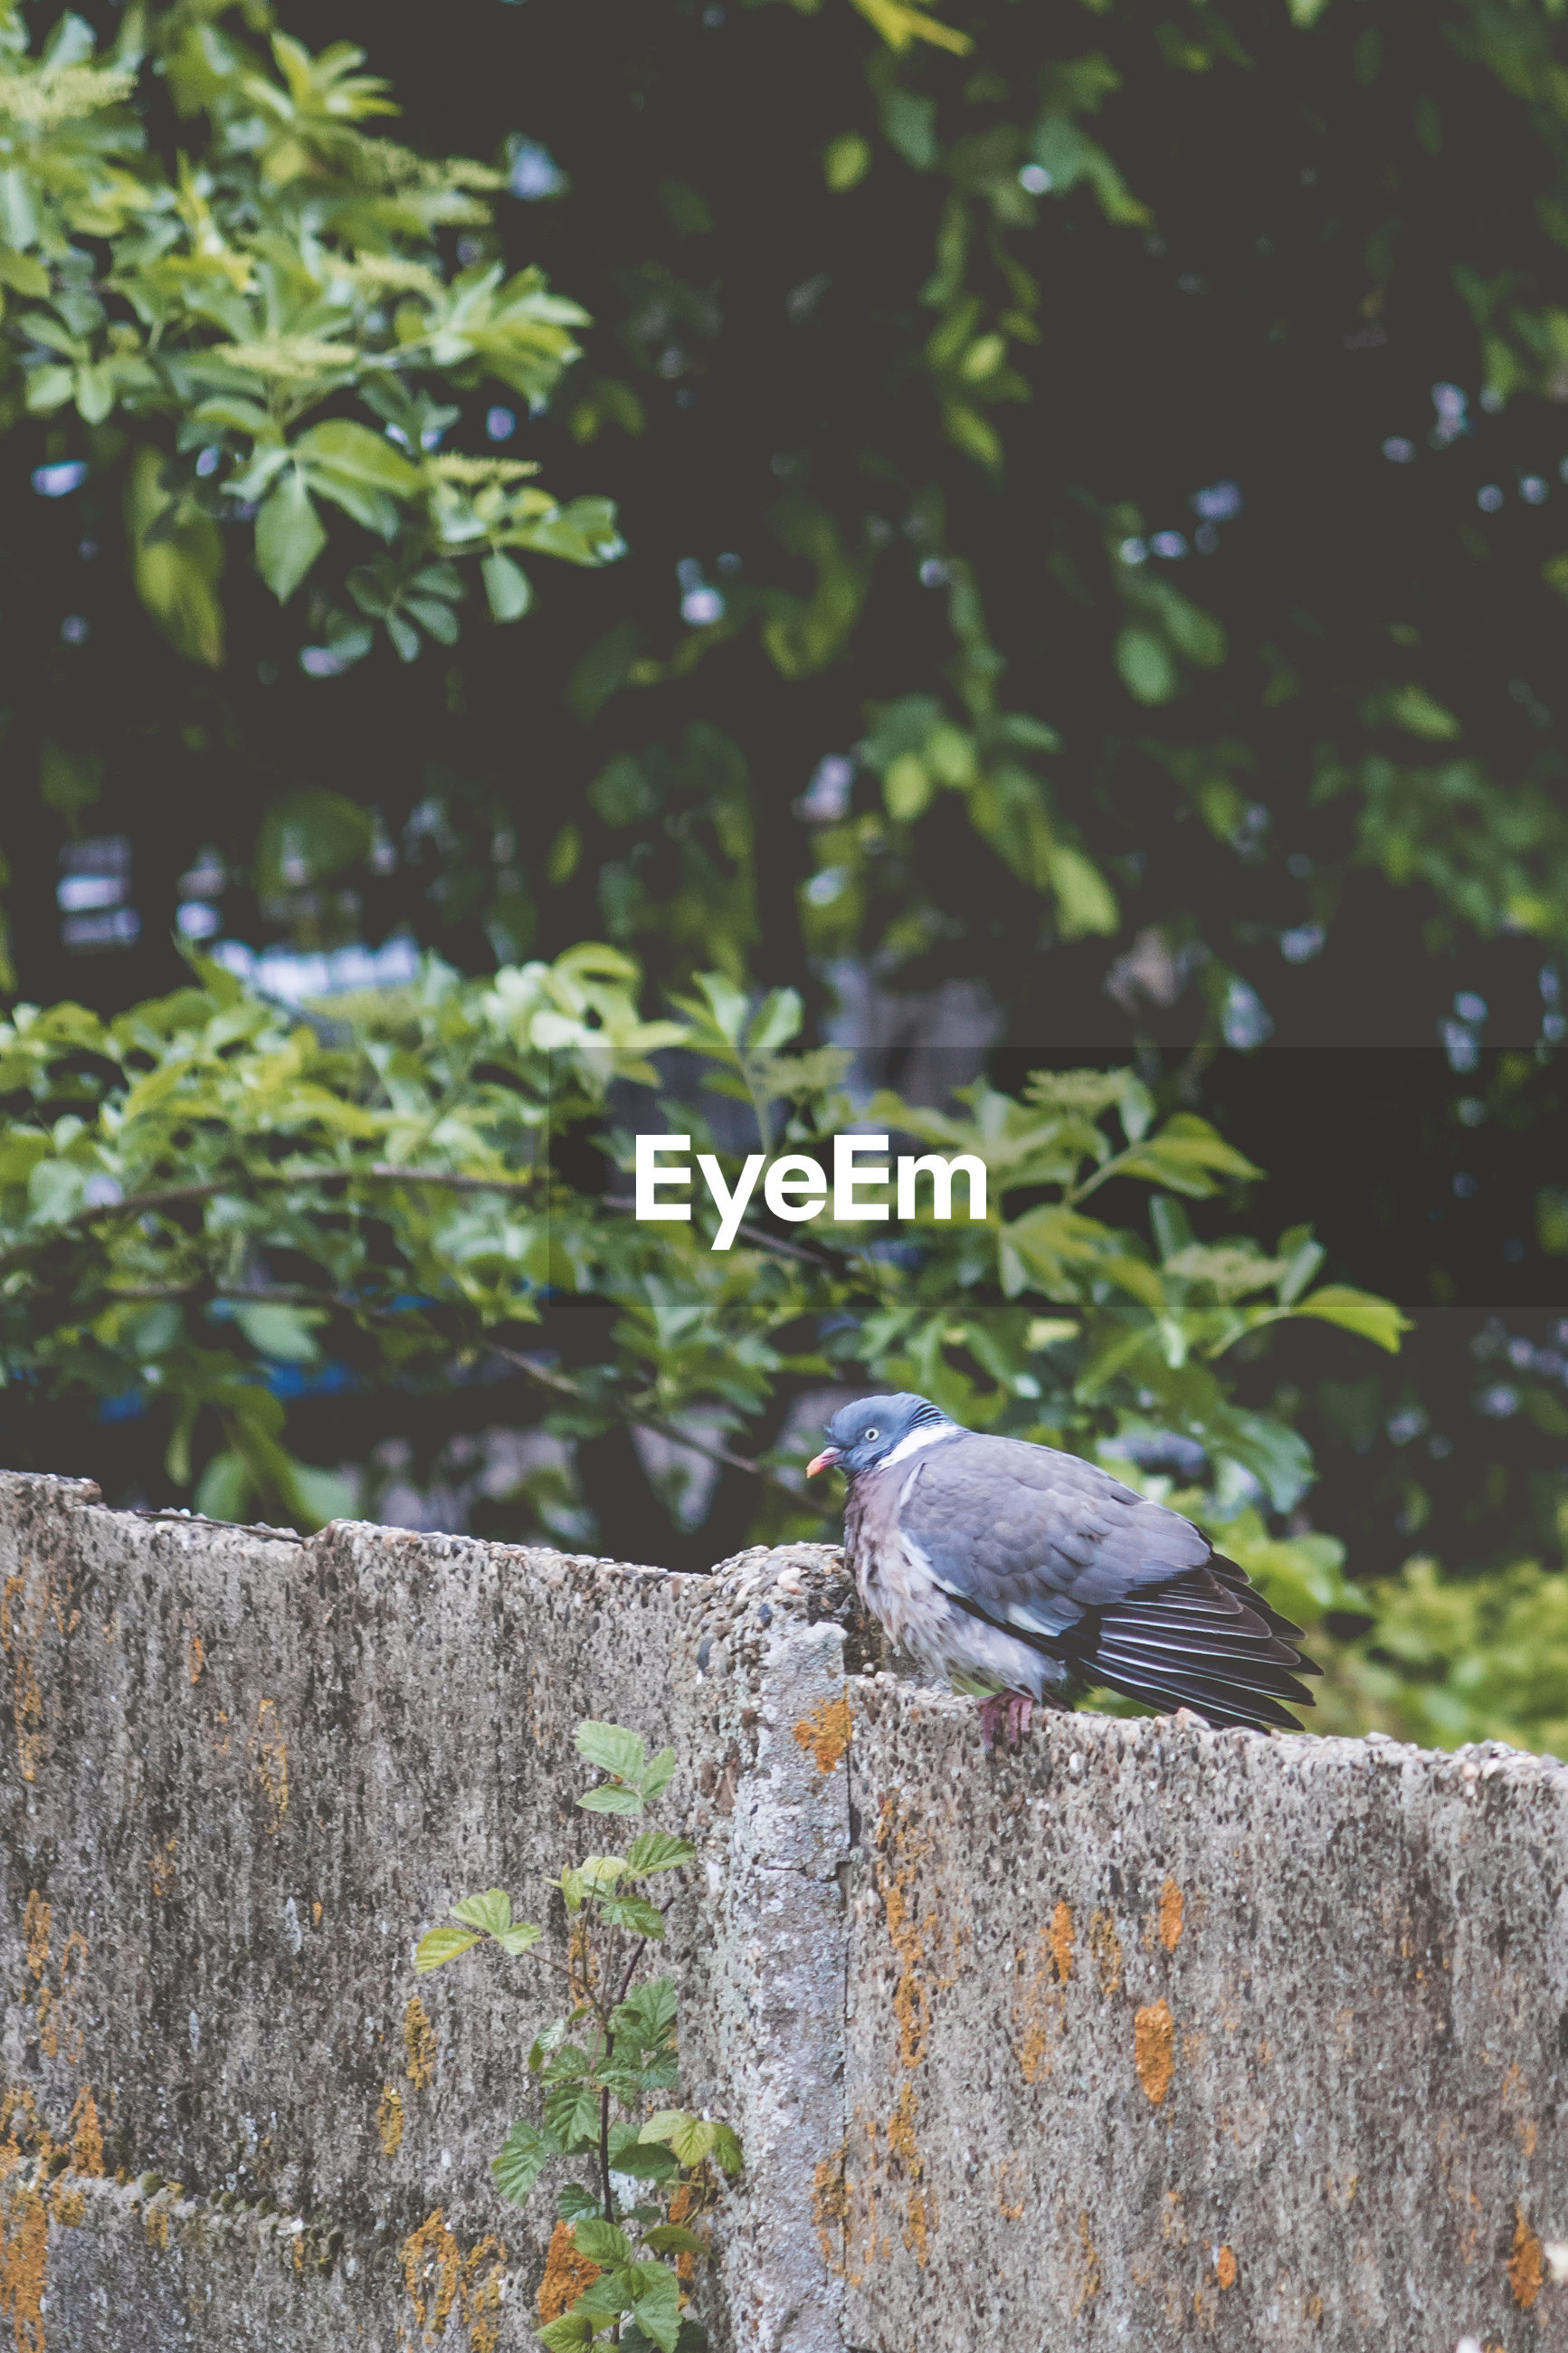 Pigeon perching on fence against trees